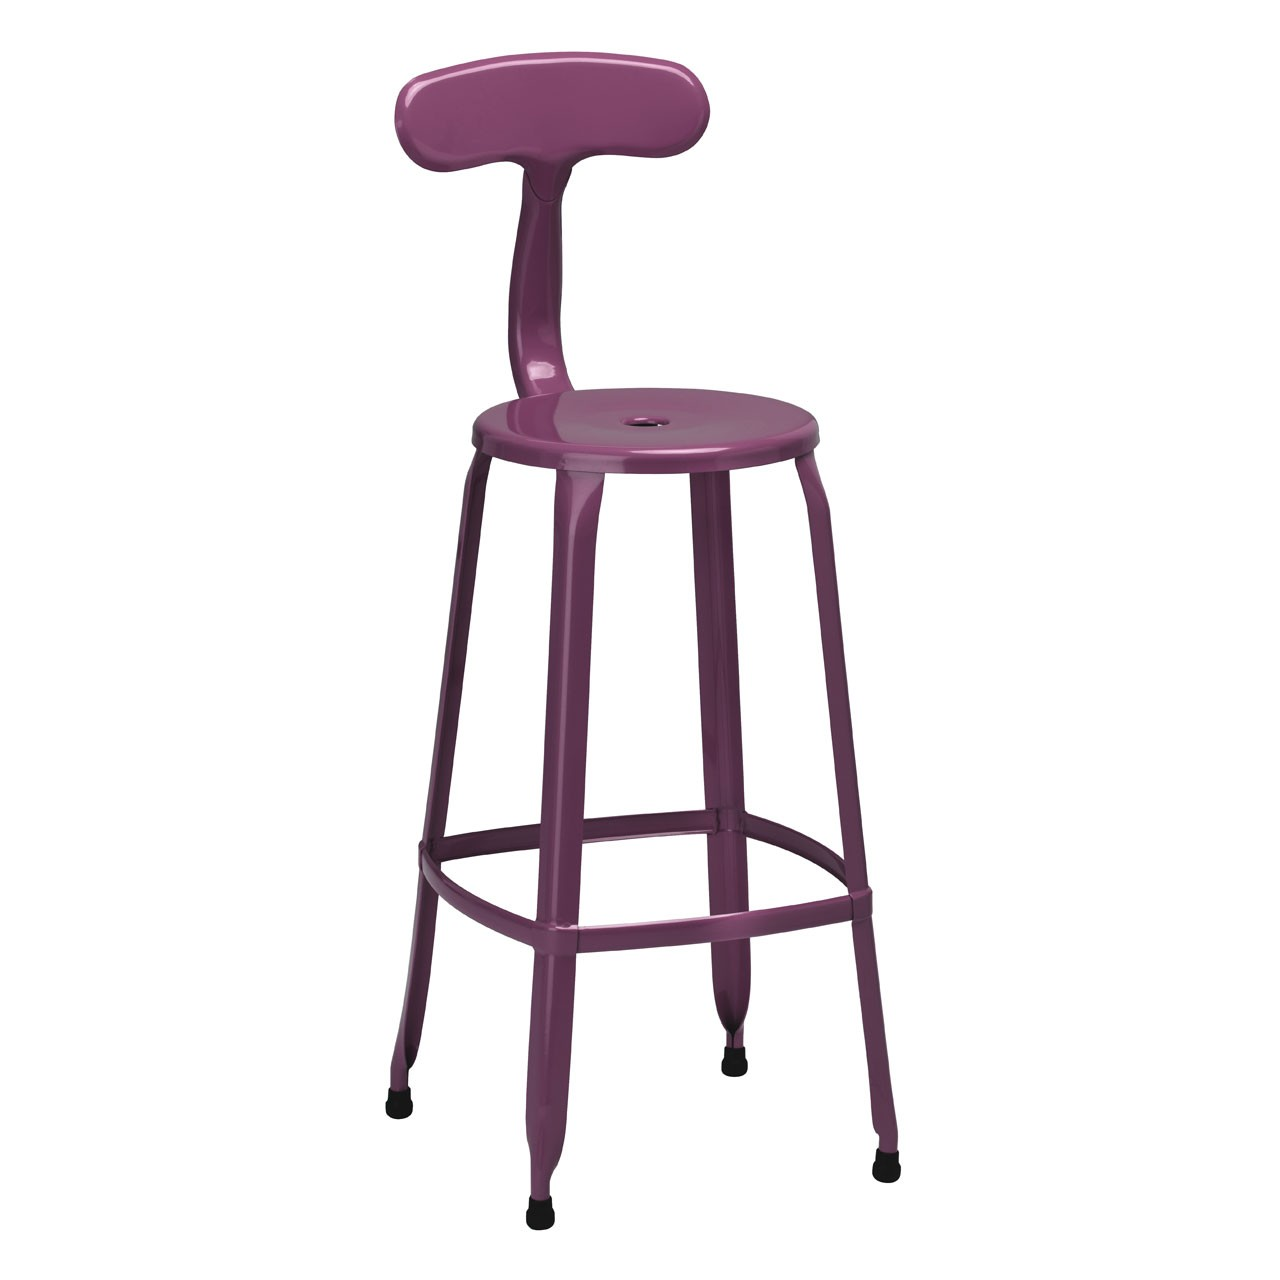 4 x Breakfast Chair Disc Bar Chair Powder Coated Metal Purple